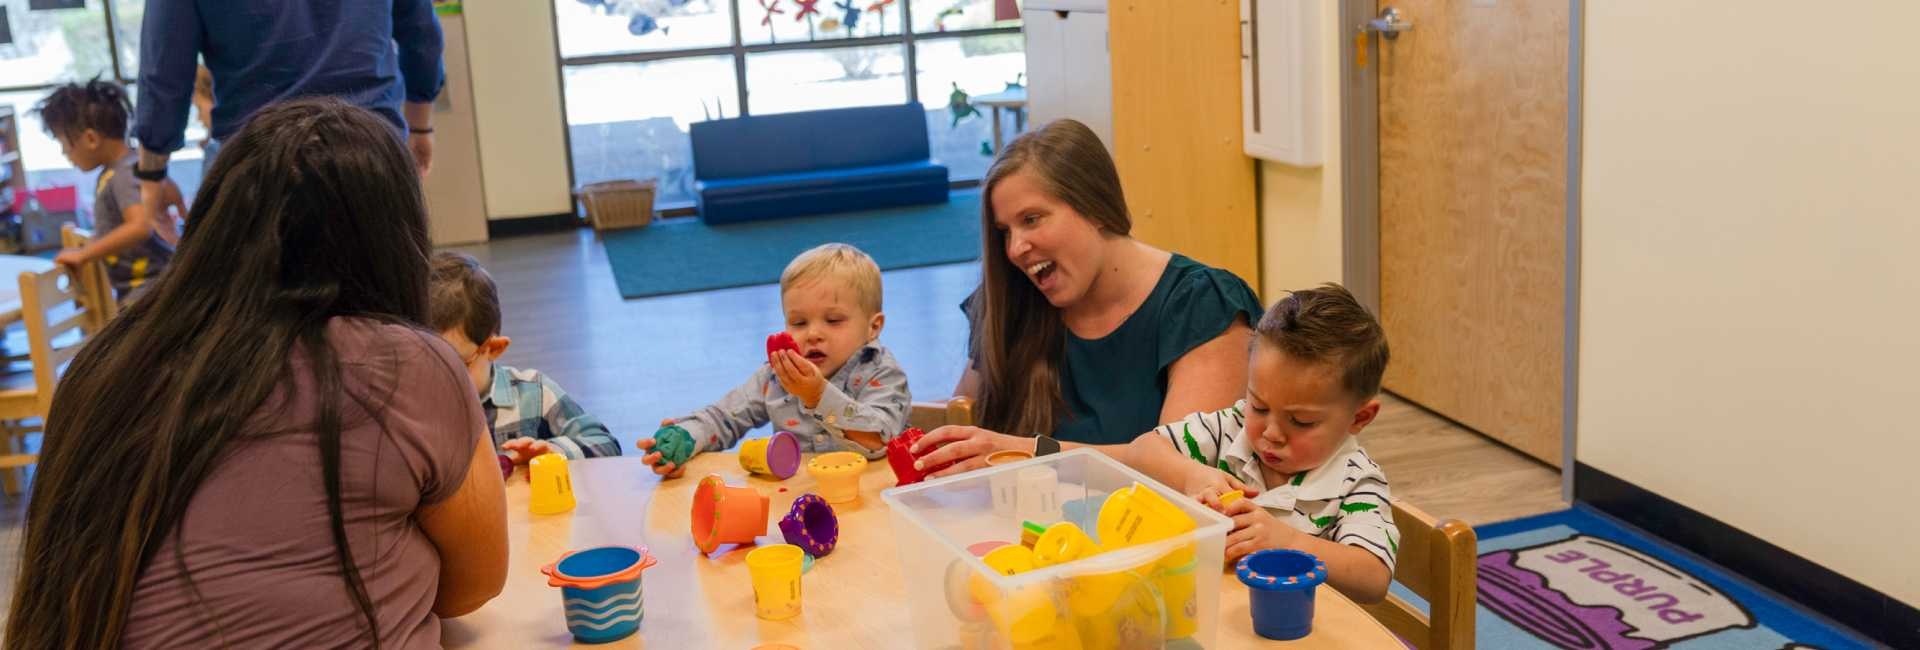 two teachers play with children at a table with toys